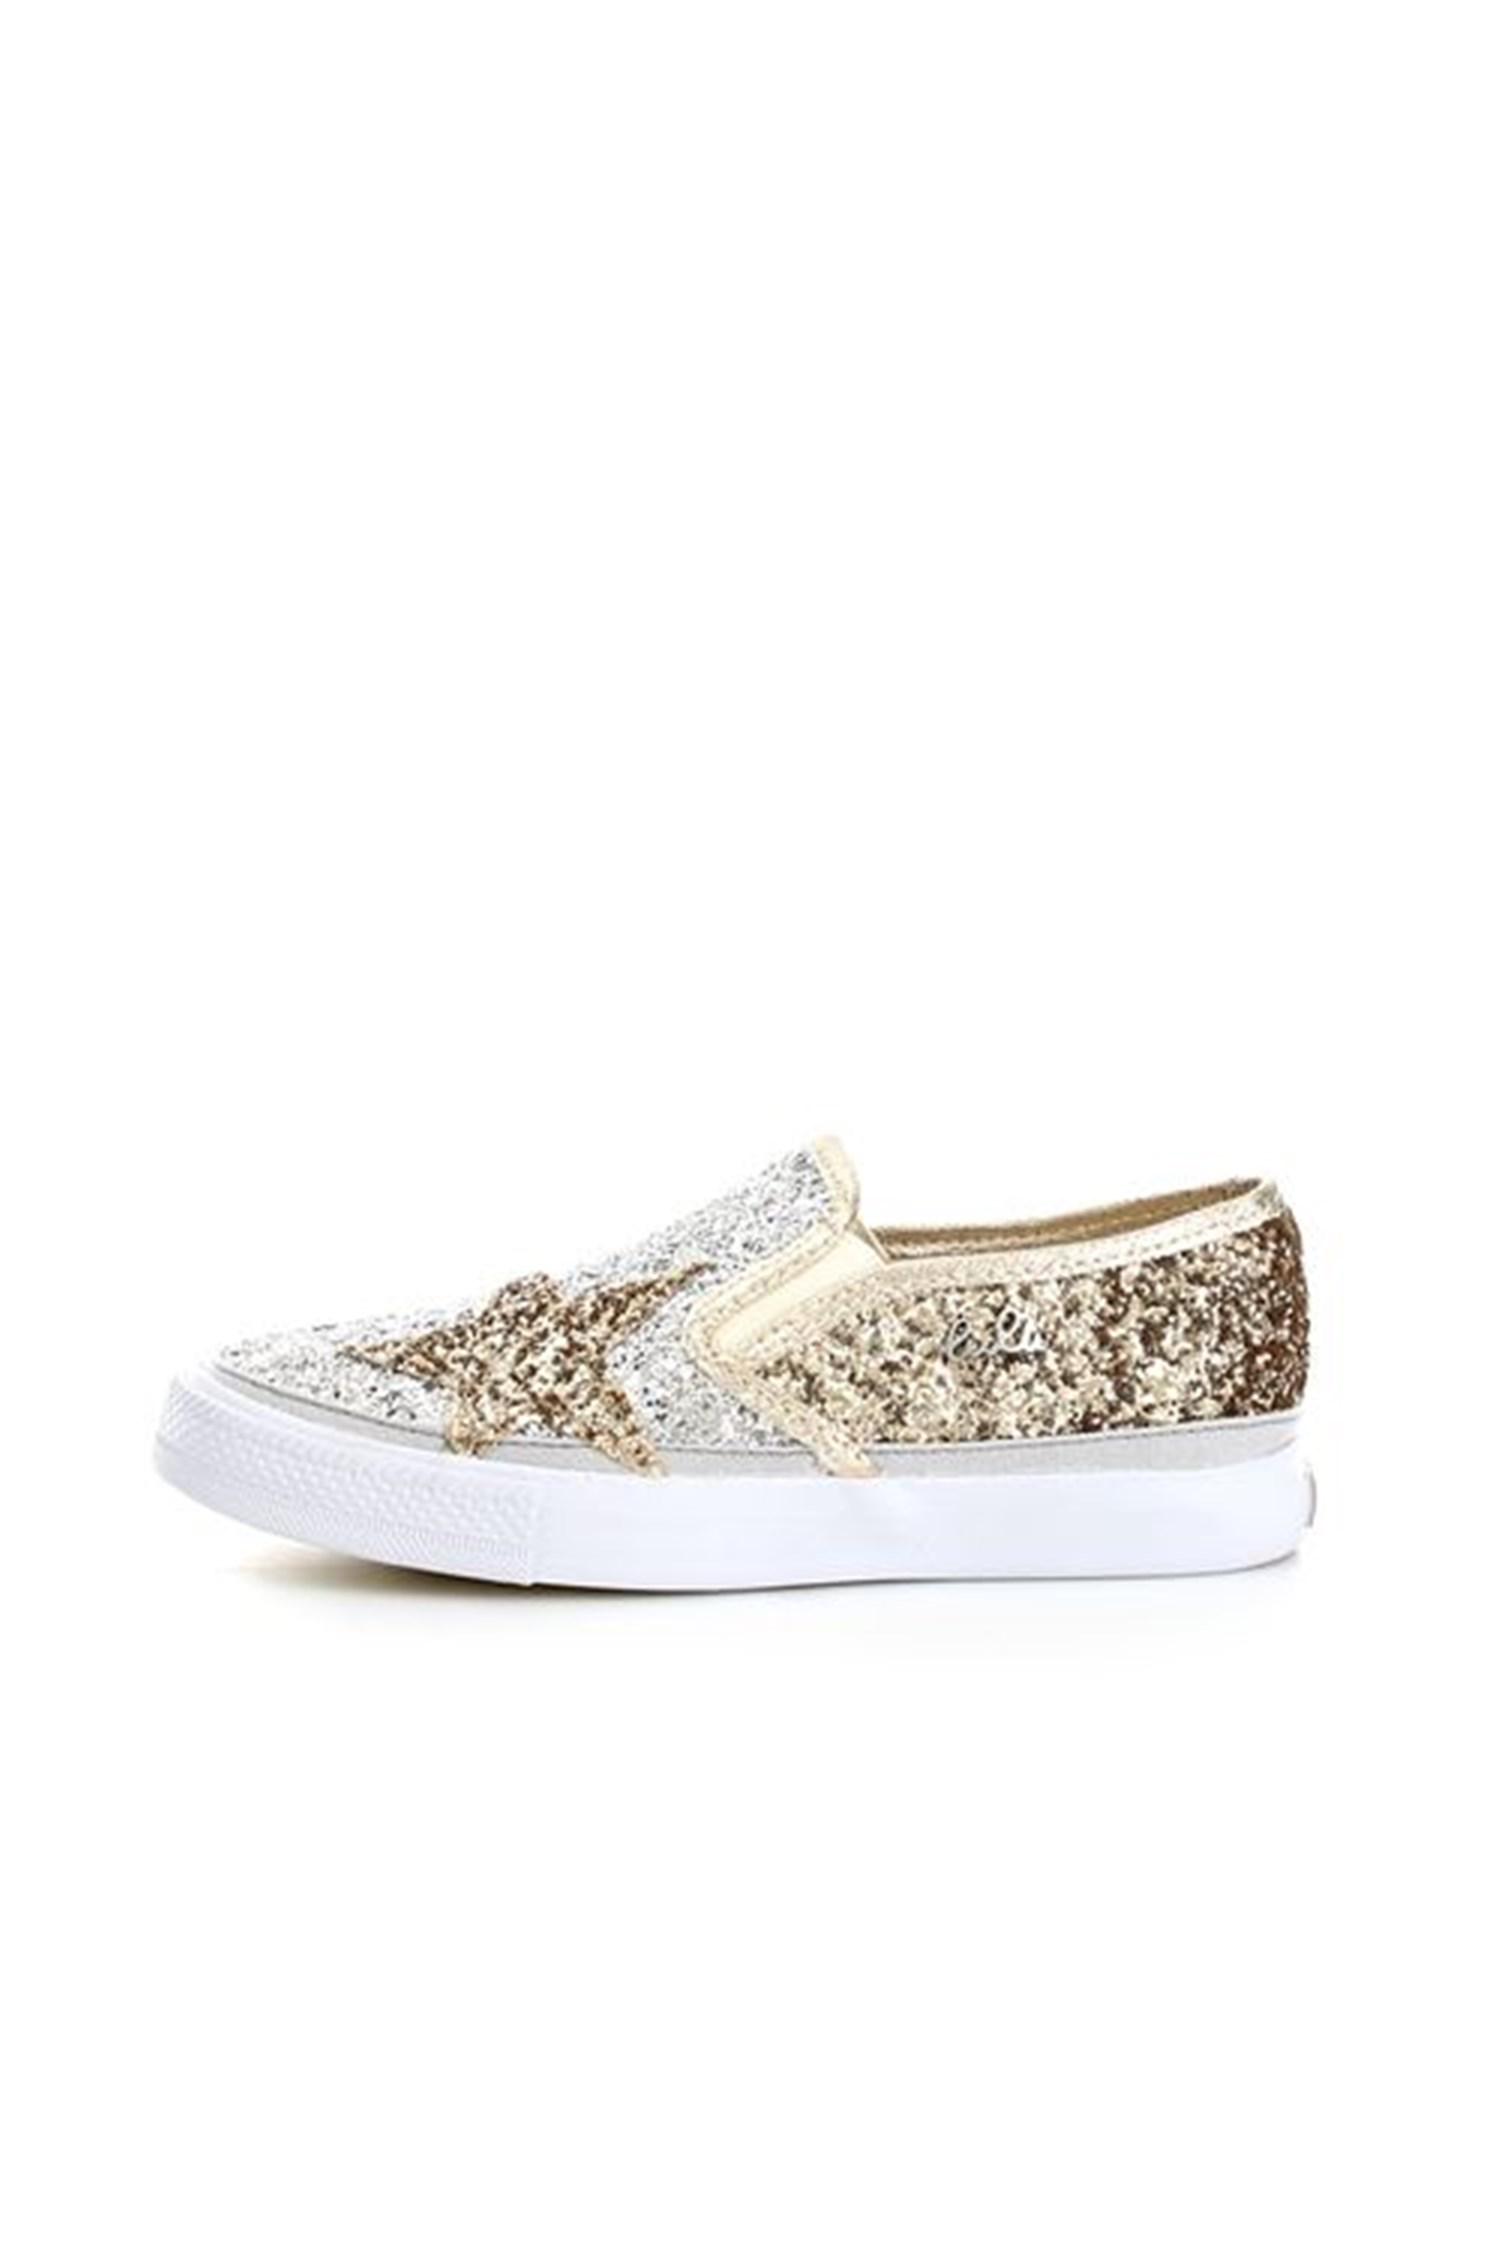 Lulu' Shoes Child Loafers GOLD NEWGLITTER